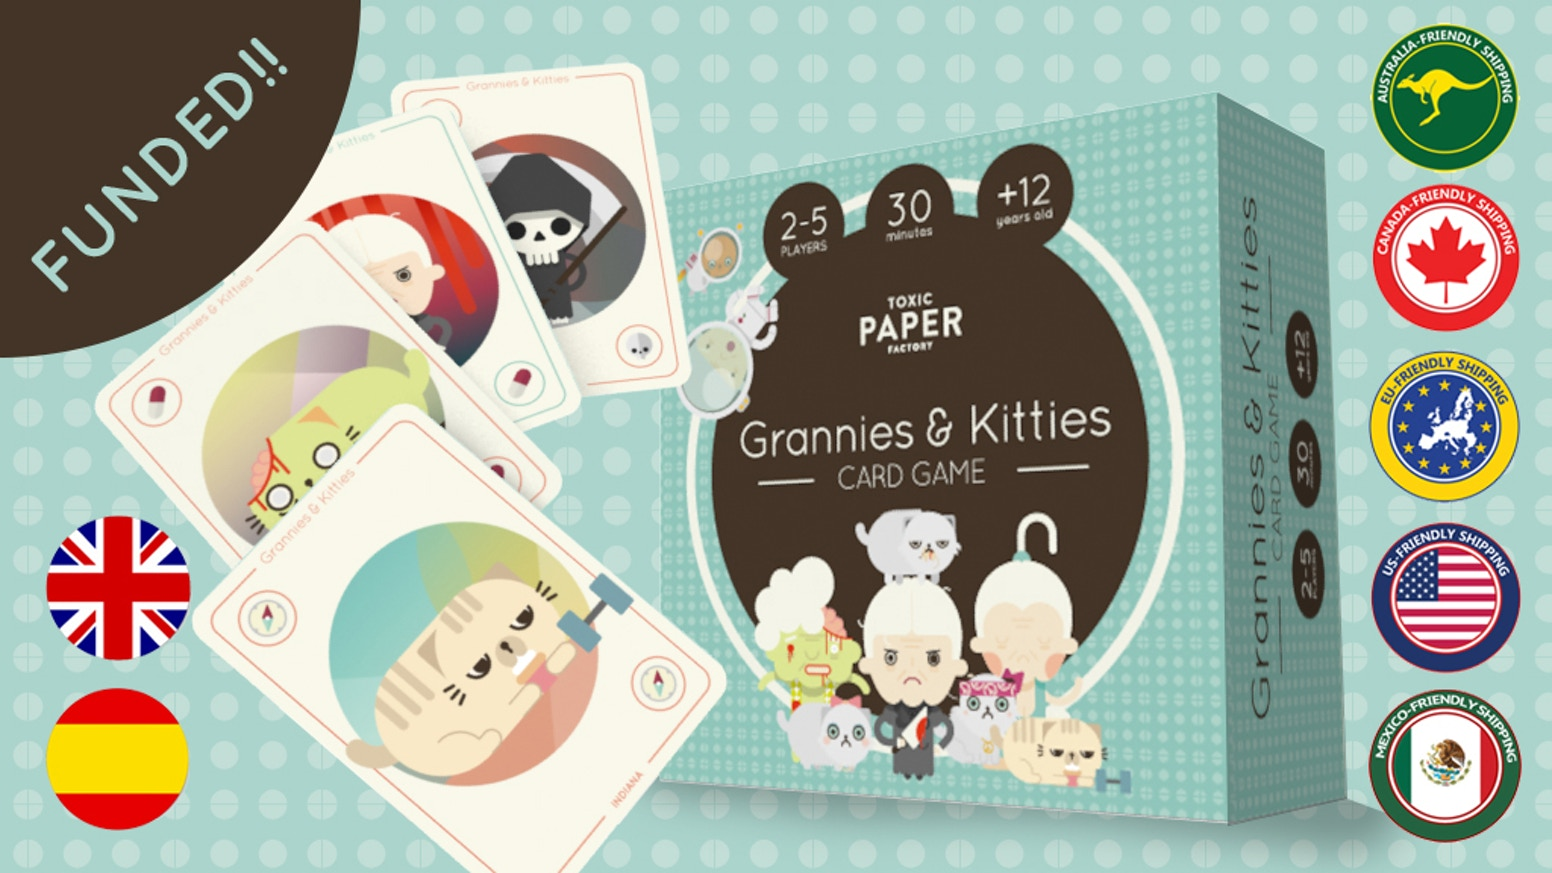 A card game where to take the role of an adorable kitty-lover granny and get as many kitties as you can.